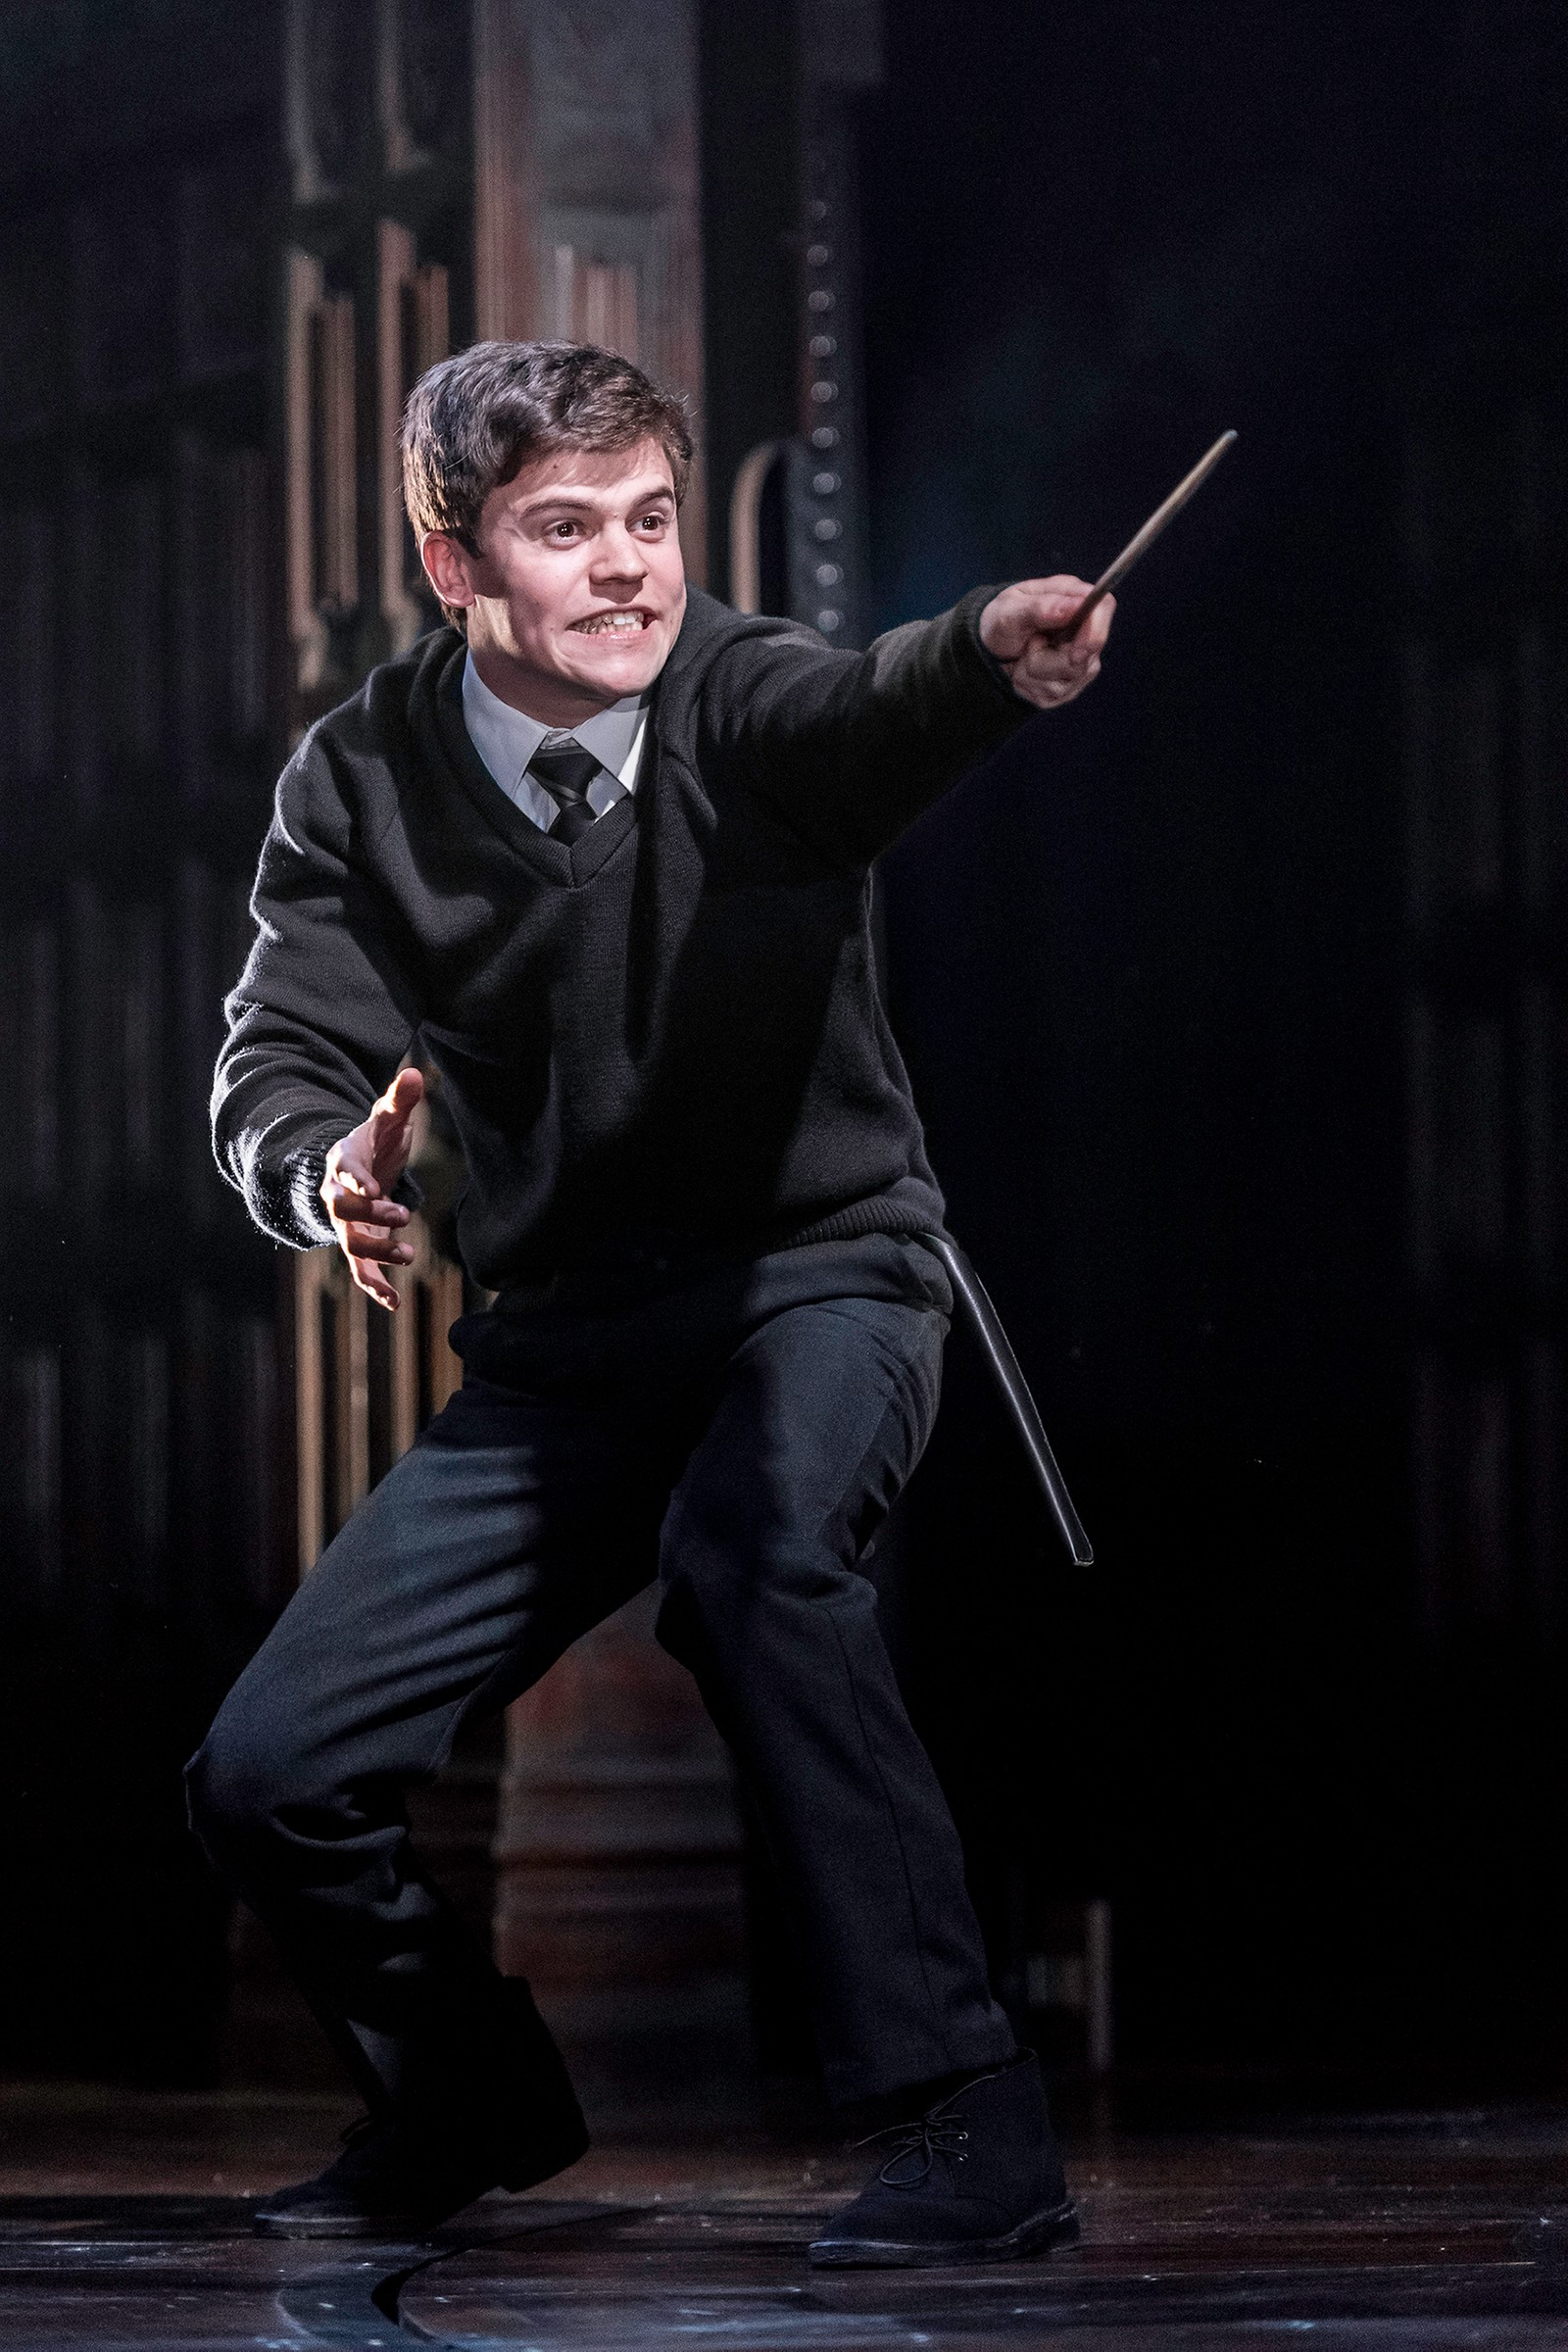 POTTERS SØNN: Mye av historien i «Harry Potter and the Cursed Child» kretser rundt Harry Potters sønn, Albus Potter (Sam Clemmett).